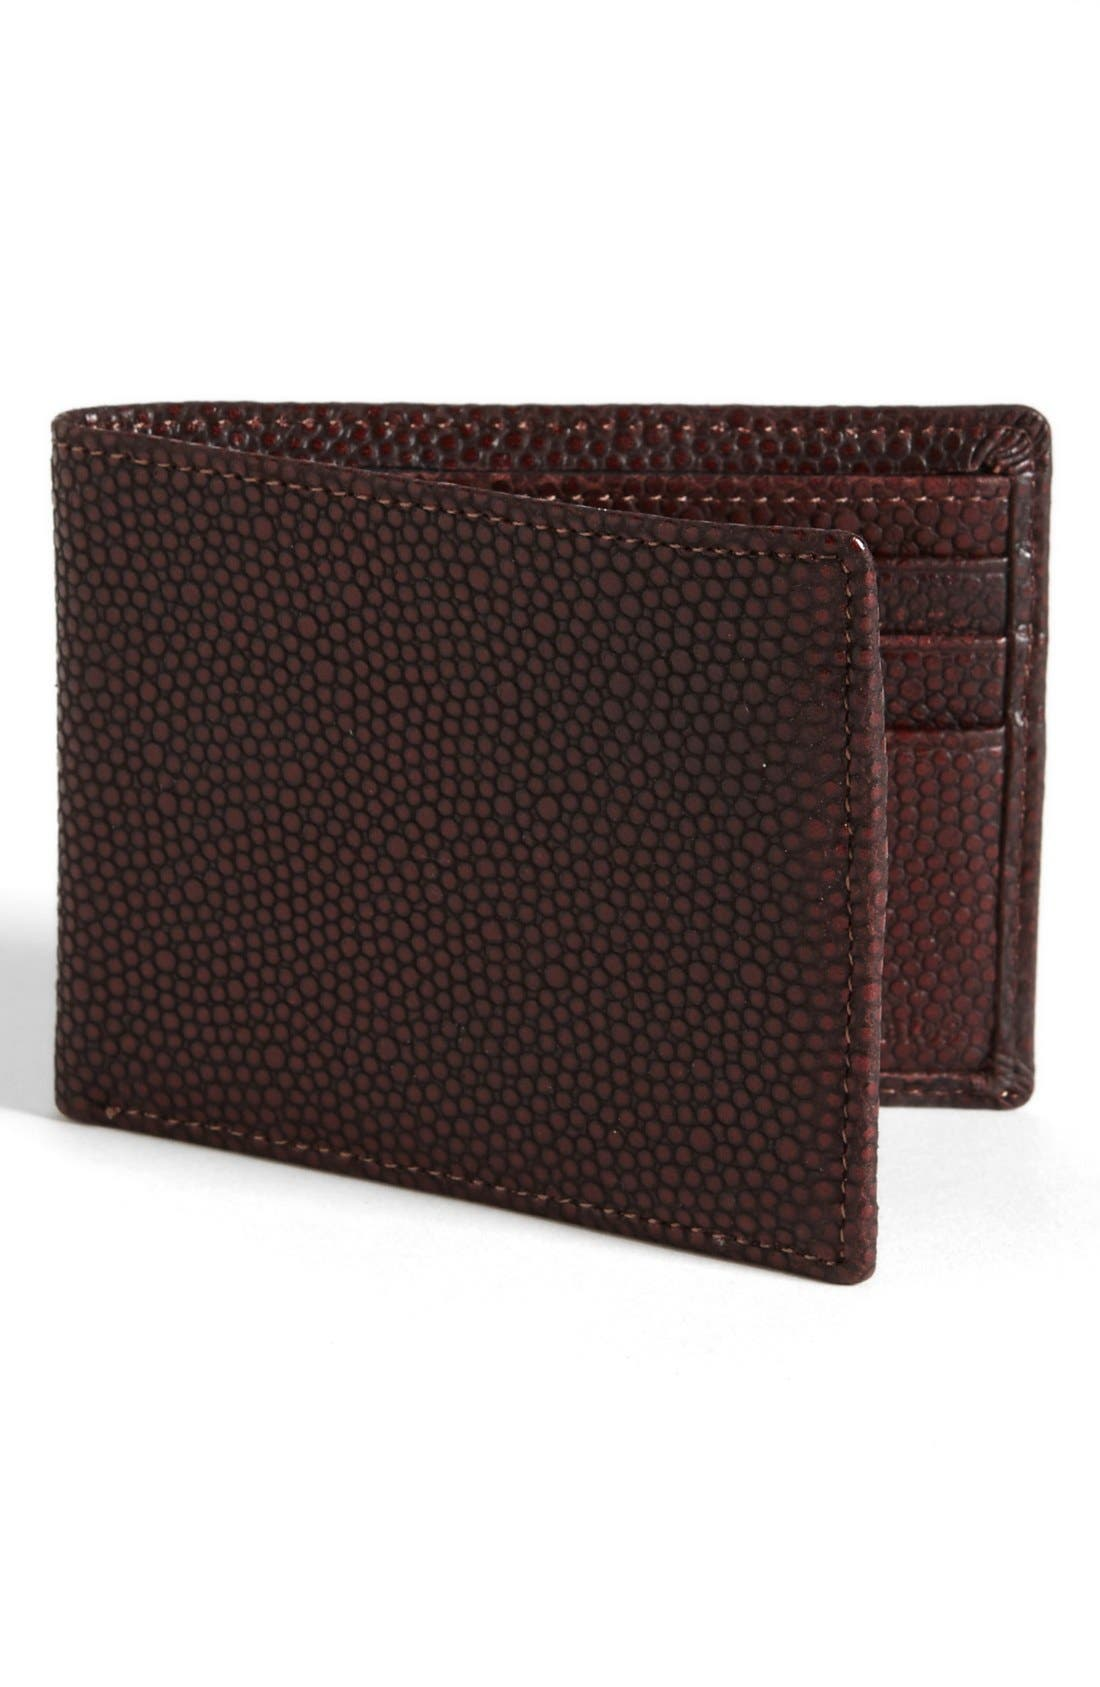 Alternate Image 1 Selected - John Varvatos Collection Pebbled Leather Wallet